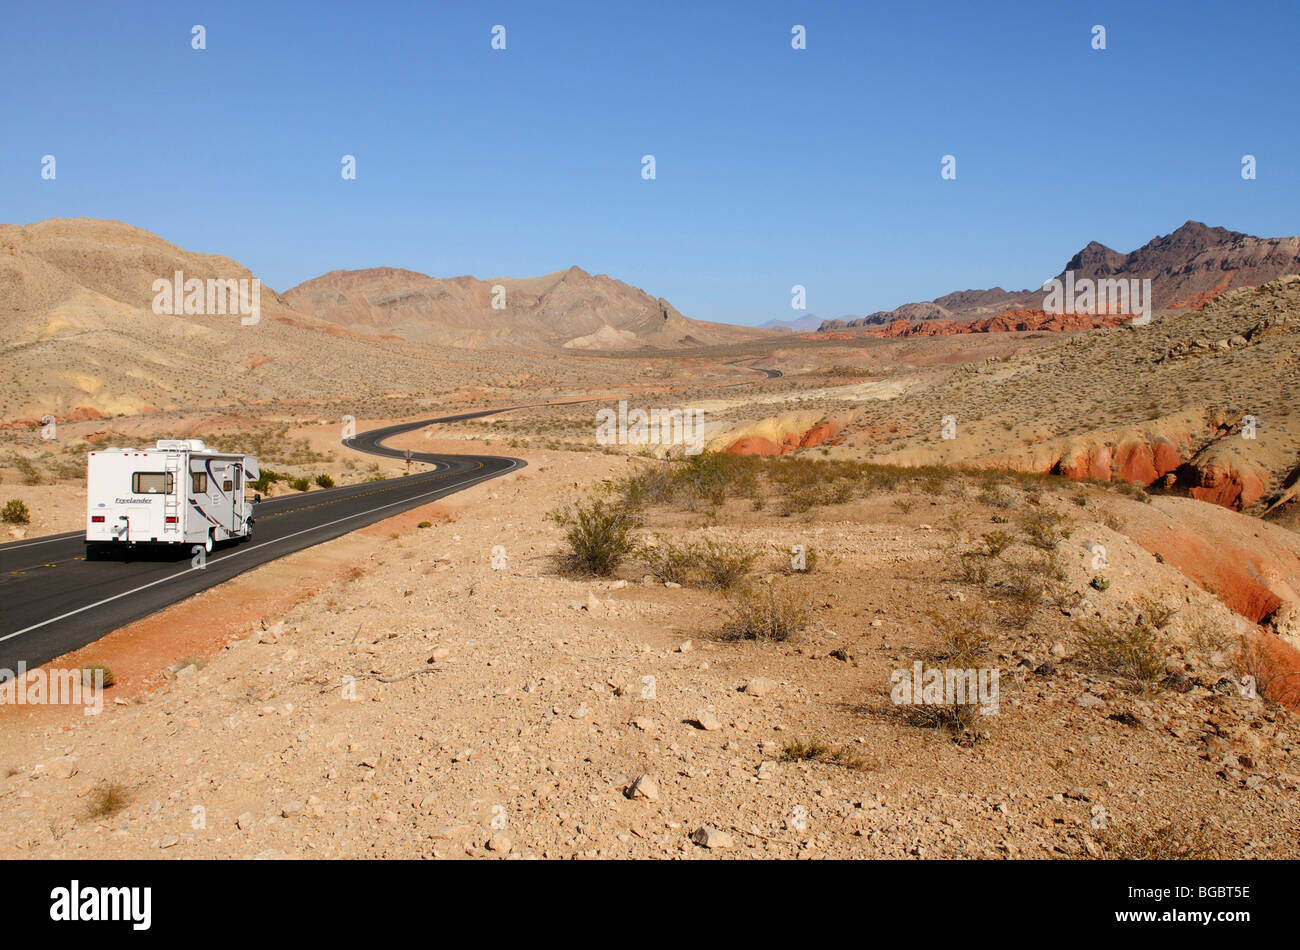 Camper, Valley of Fire, Nevada, USA - Stock Image